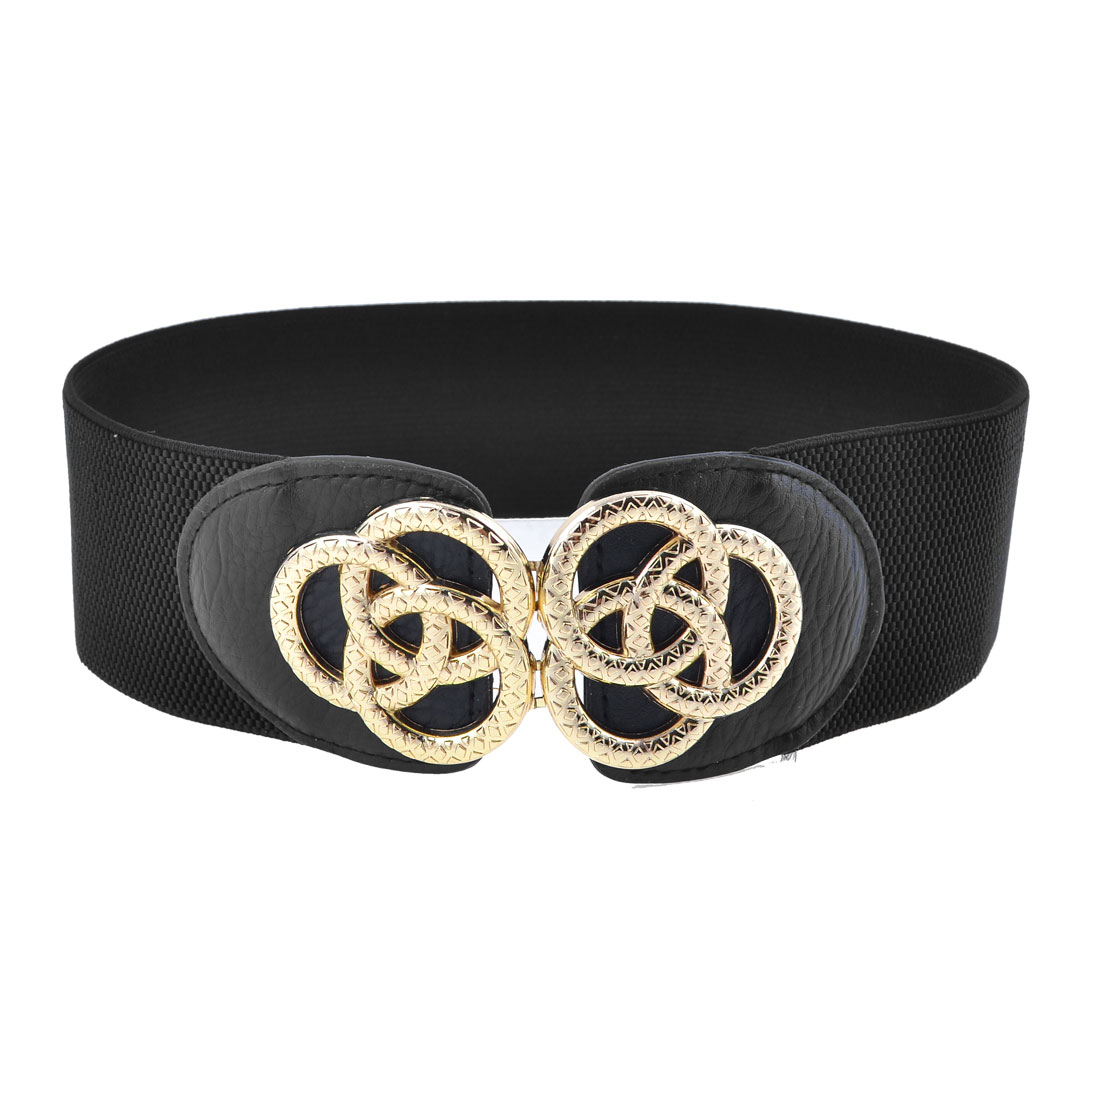 Women Metal Linked Rings Interlocking Buckle Spandex 6cm Wide Waistband Black